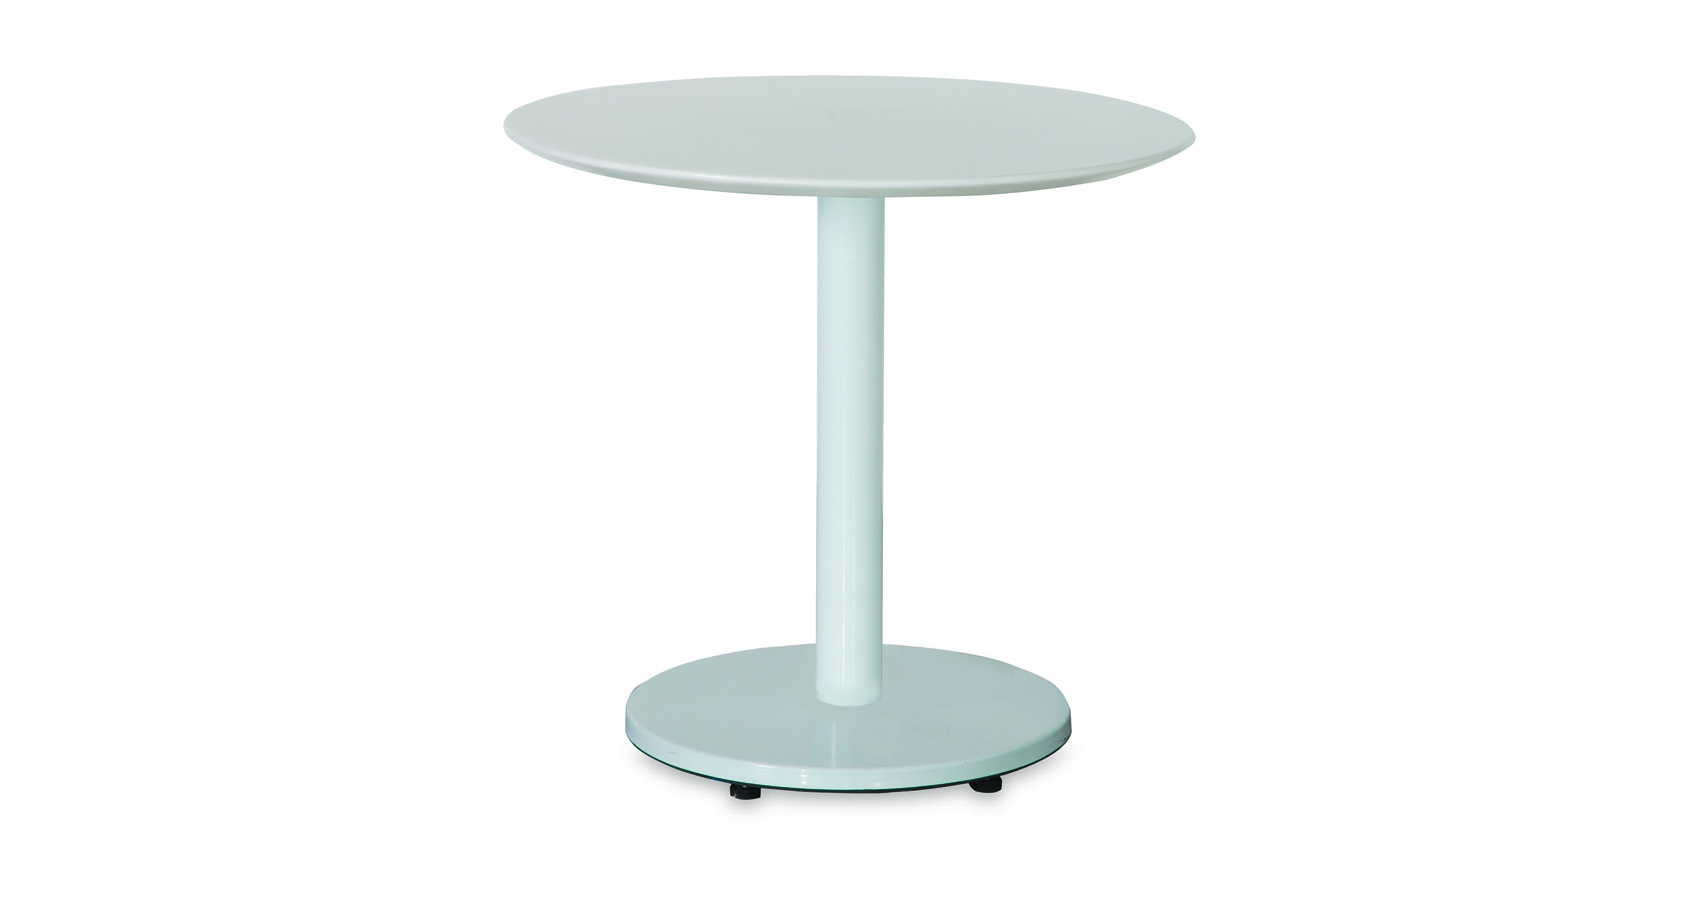 Halo Cafe Table White Base White Acrylic Top